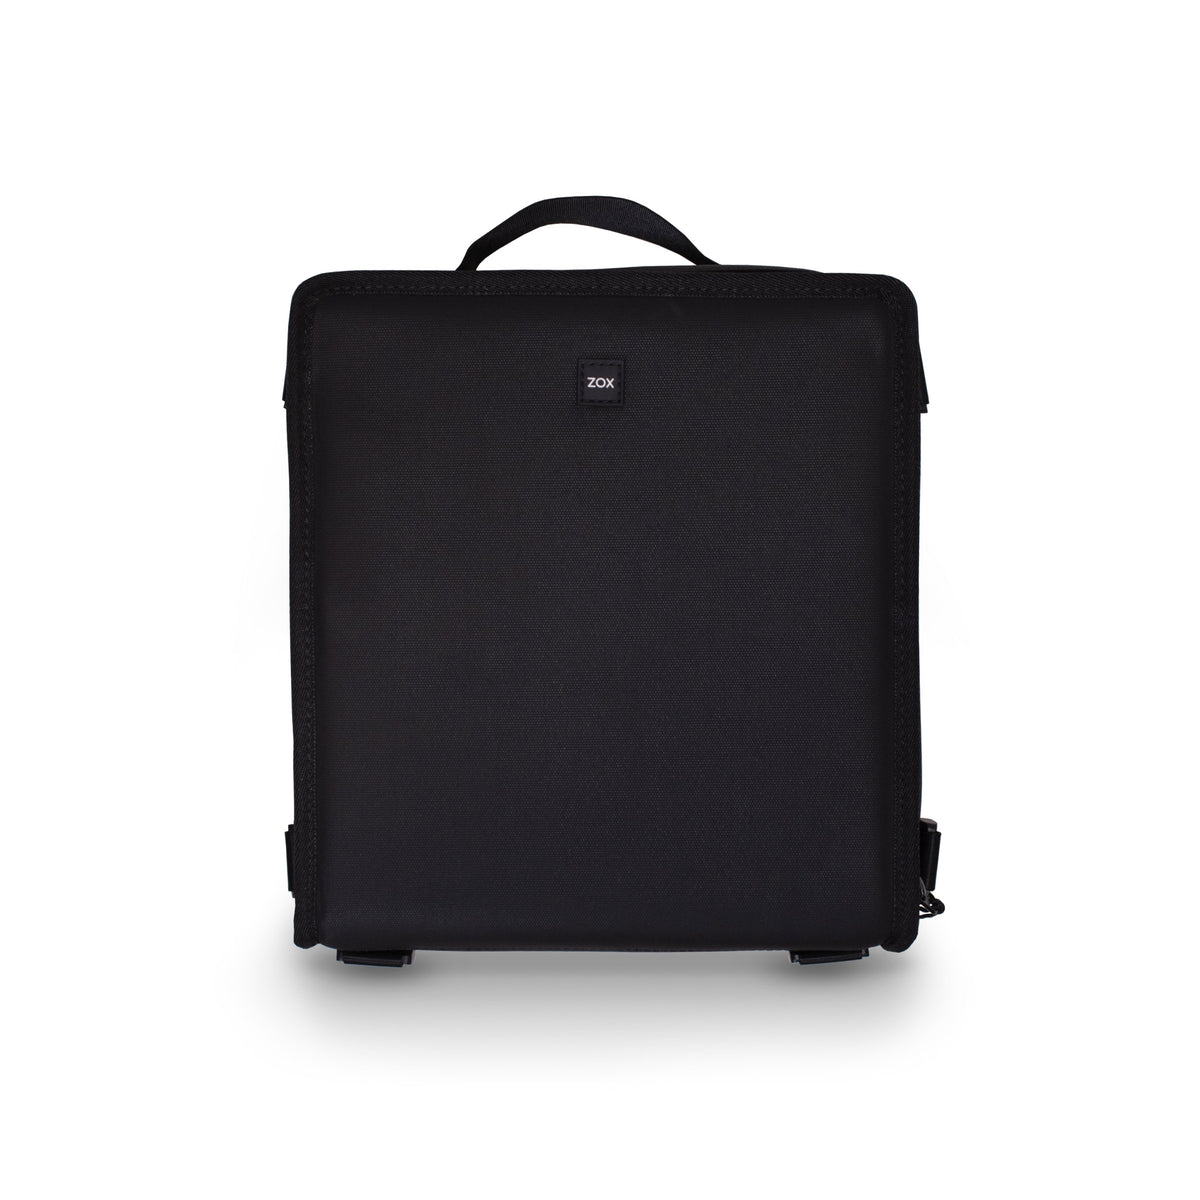 a product photo showing a black camera bag standing up so you see the outside of it